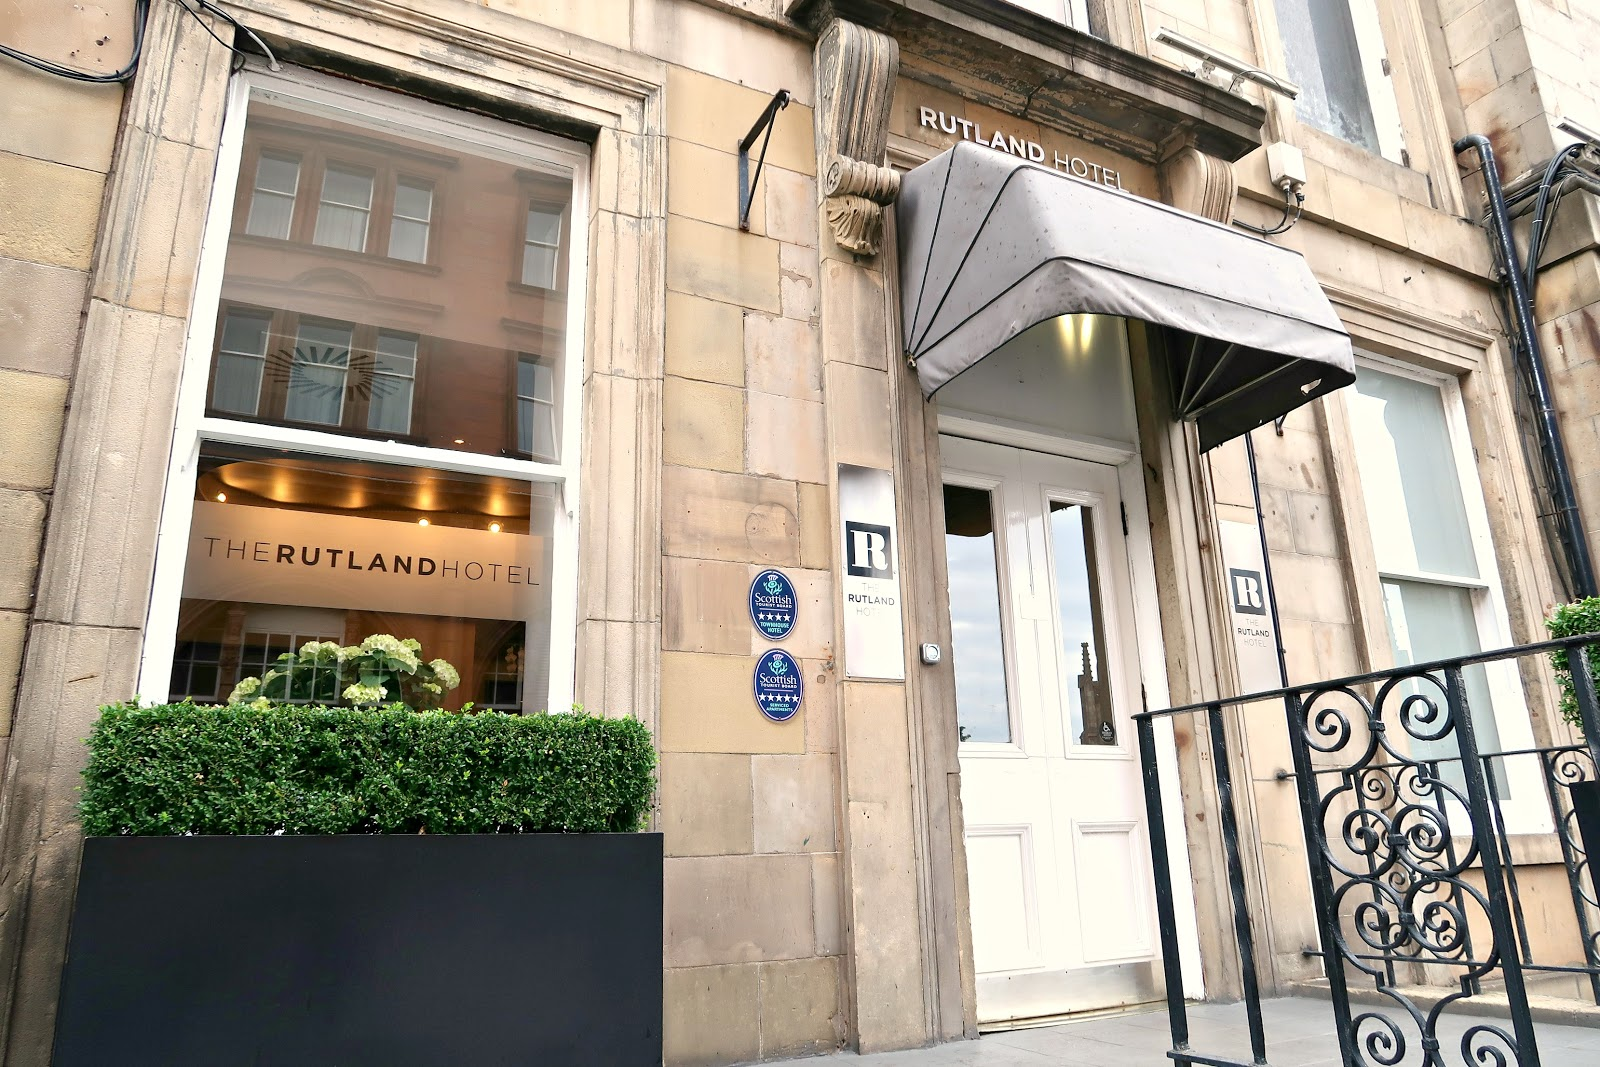 The rutland hotel and apartments edinburgh hotel review food the huxley blogger luxury